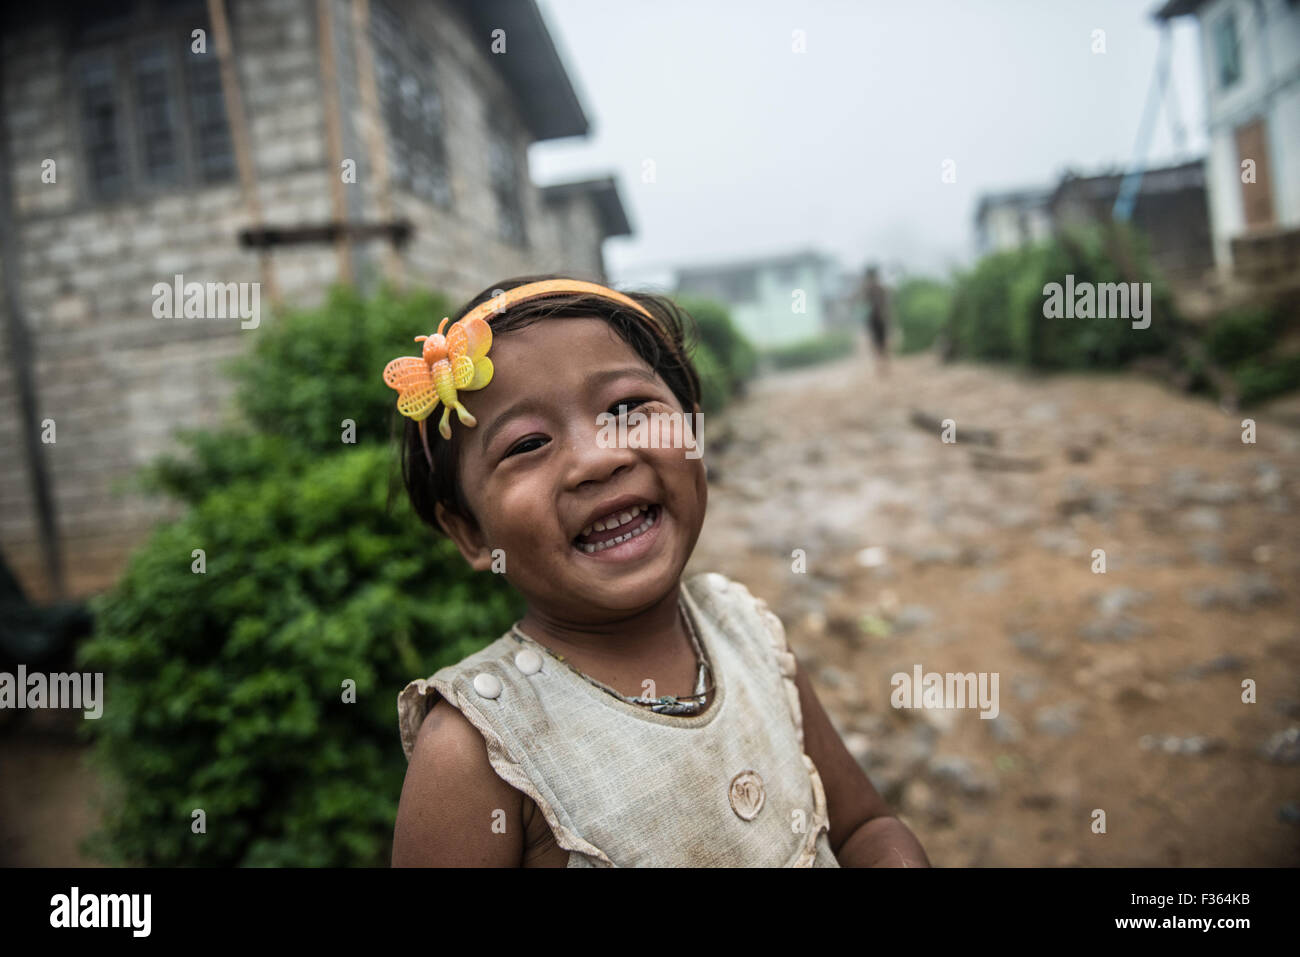 Street scene in small village near Kalaw, Shan State, Myanmar Stock Photo